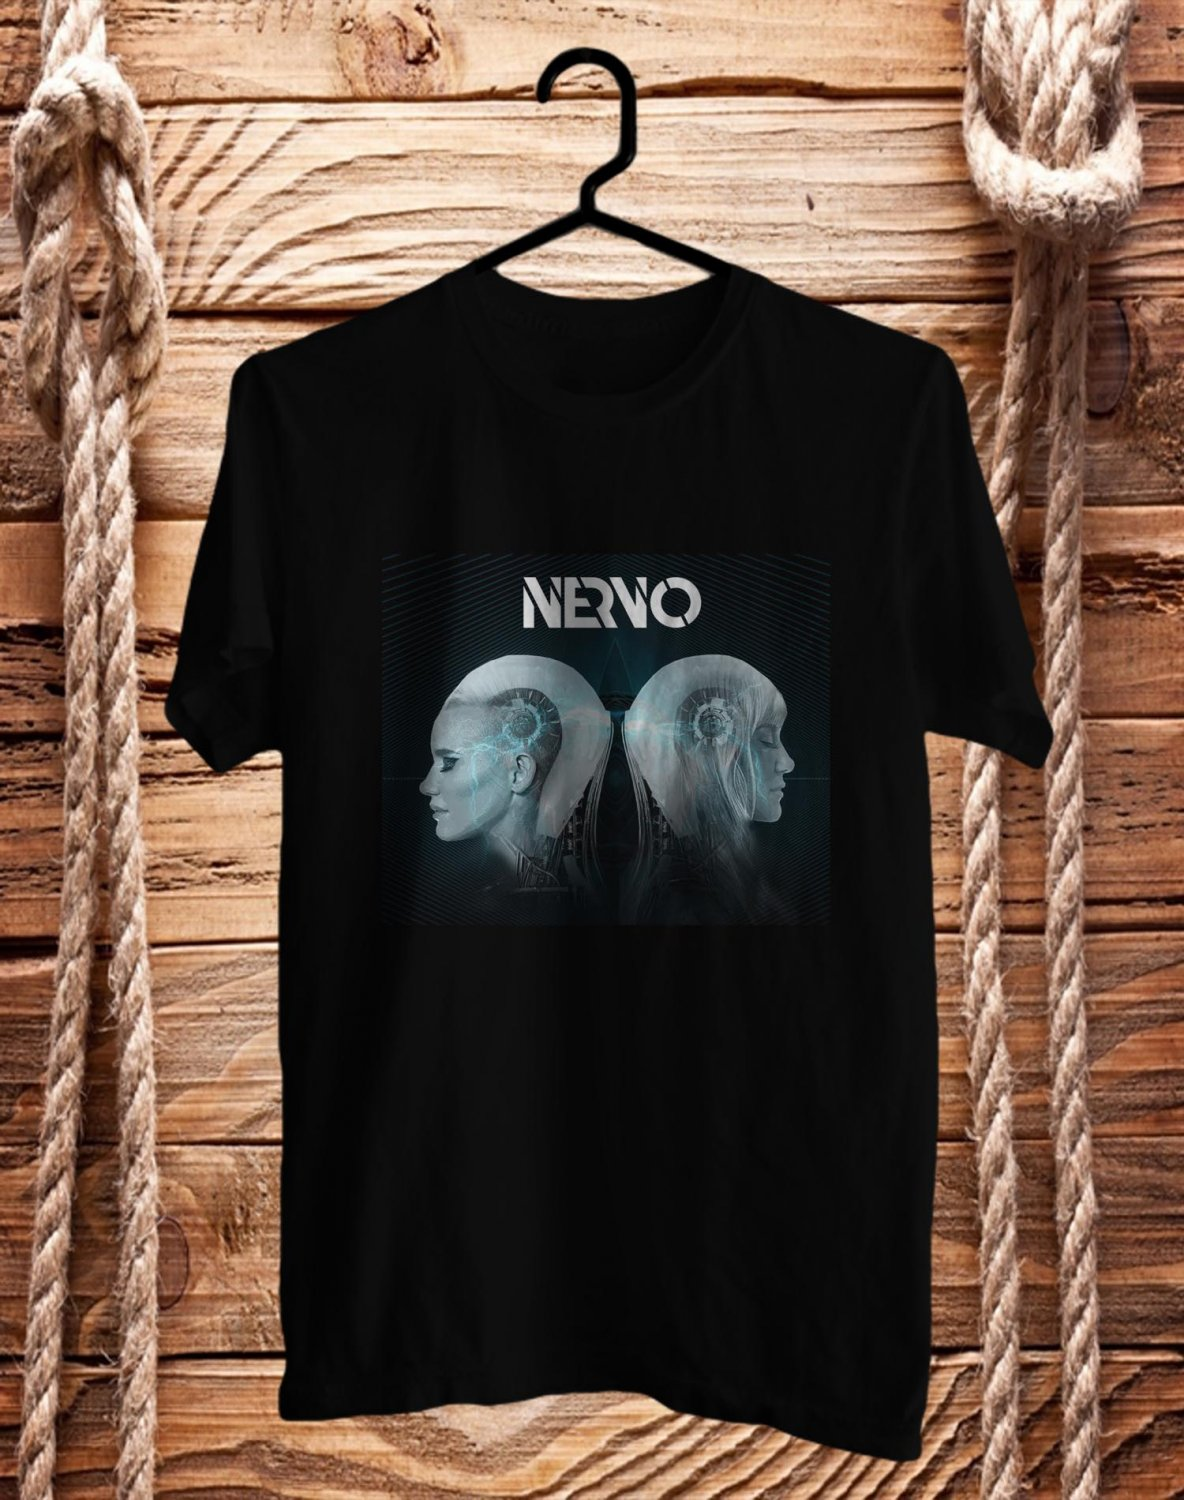 Nervo DJ Performance BLack Tee's Front Side by Complexart z2